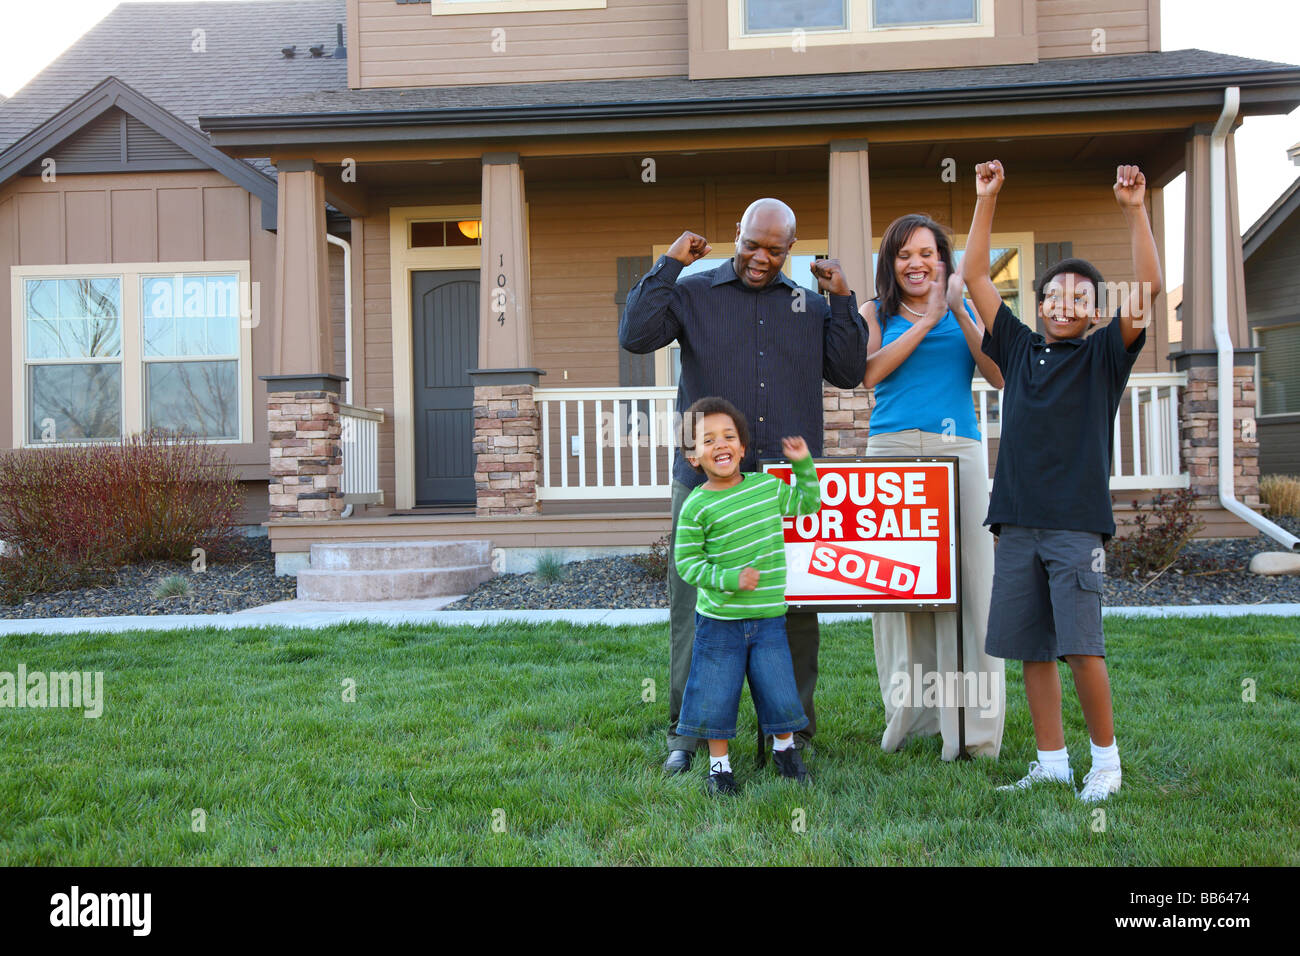 African American family celebrates new home purchase - Stock Image